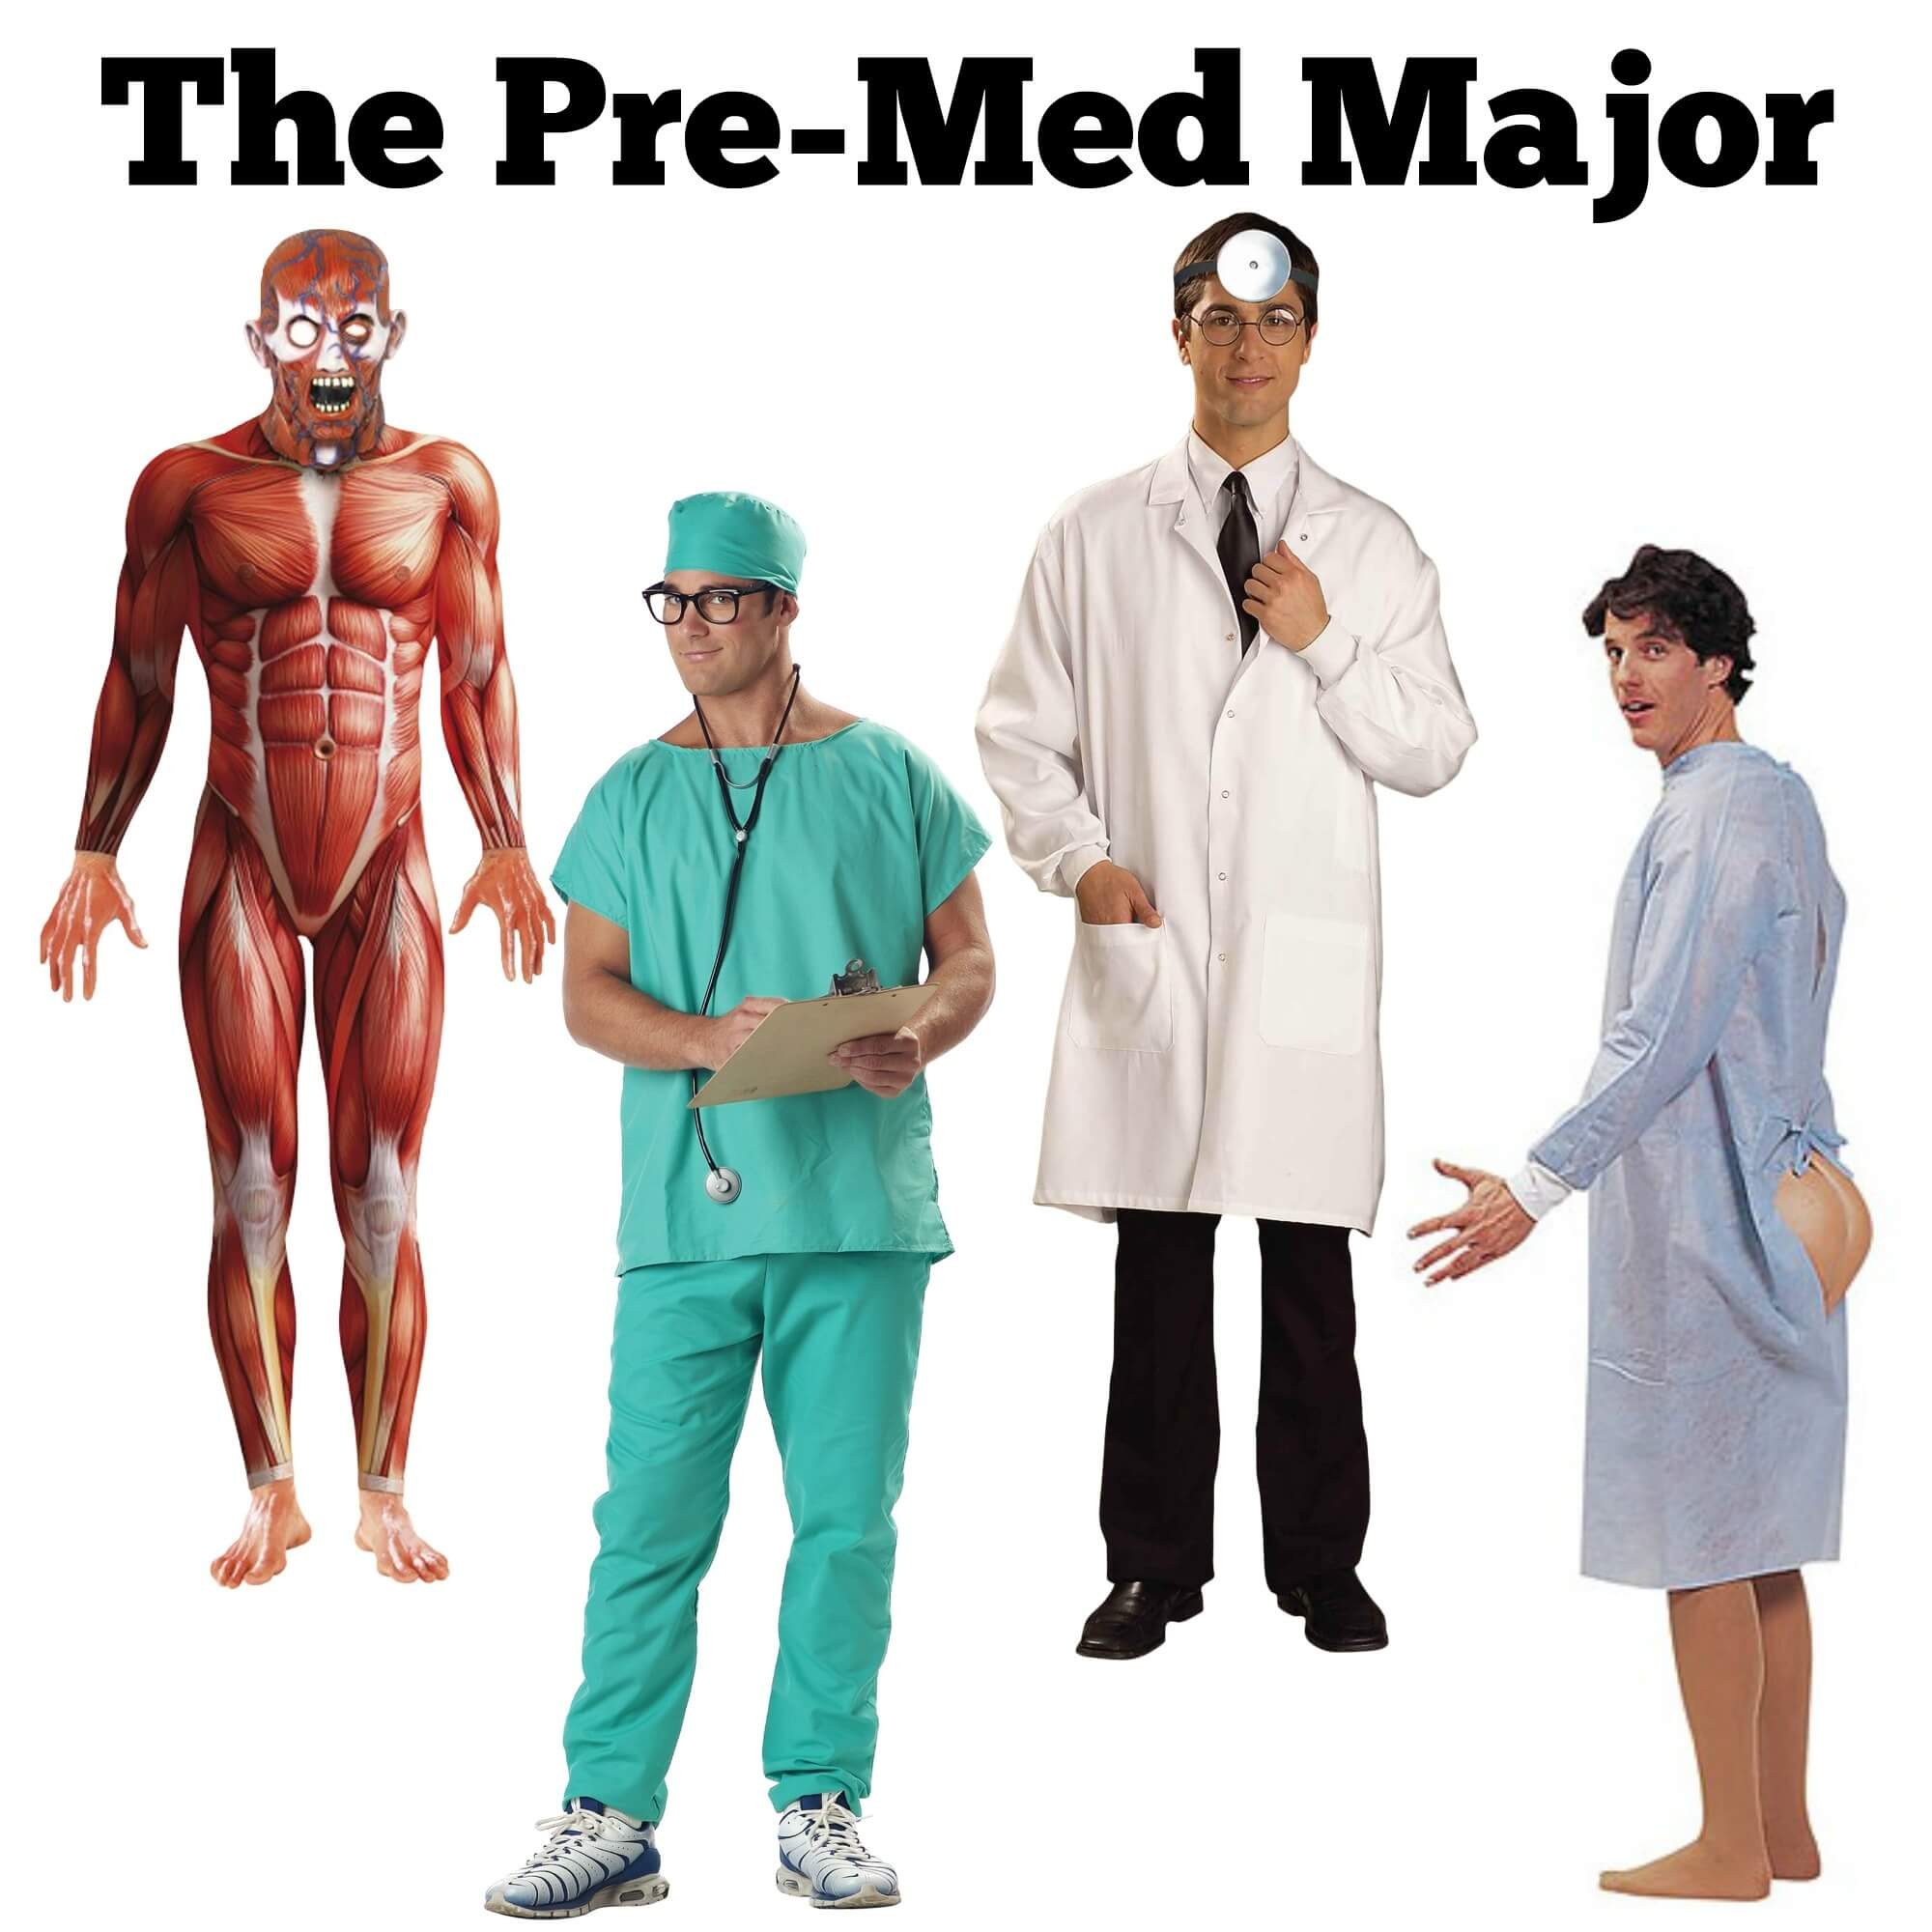 Halloween Costume Ideas for the pre-med major